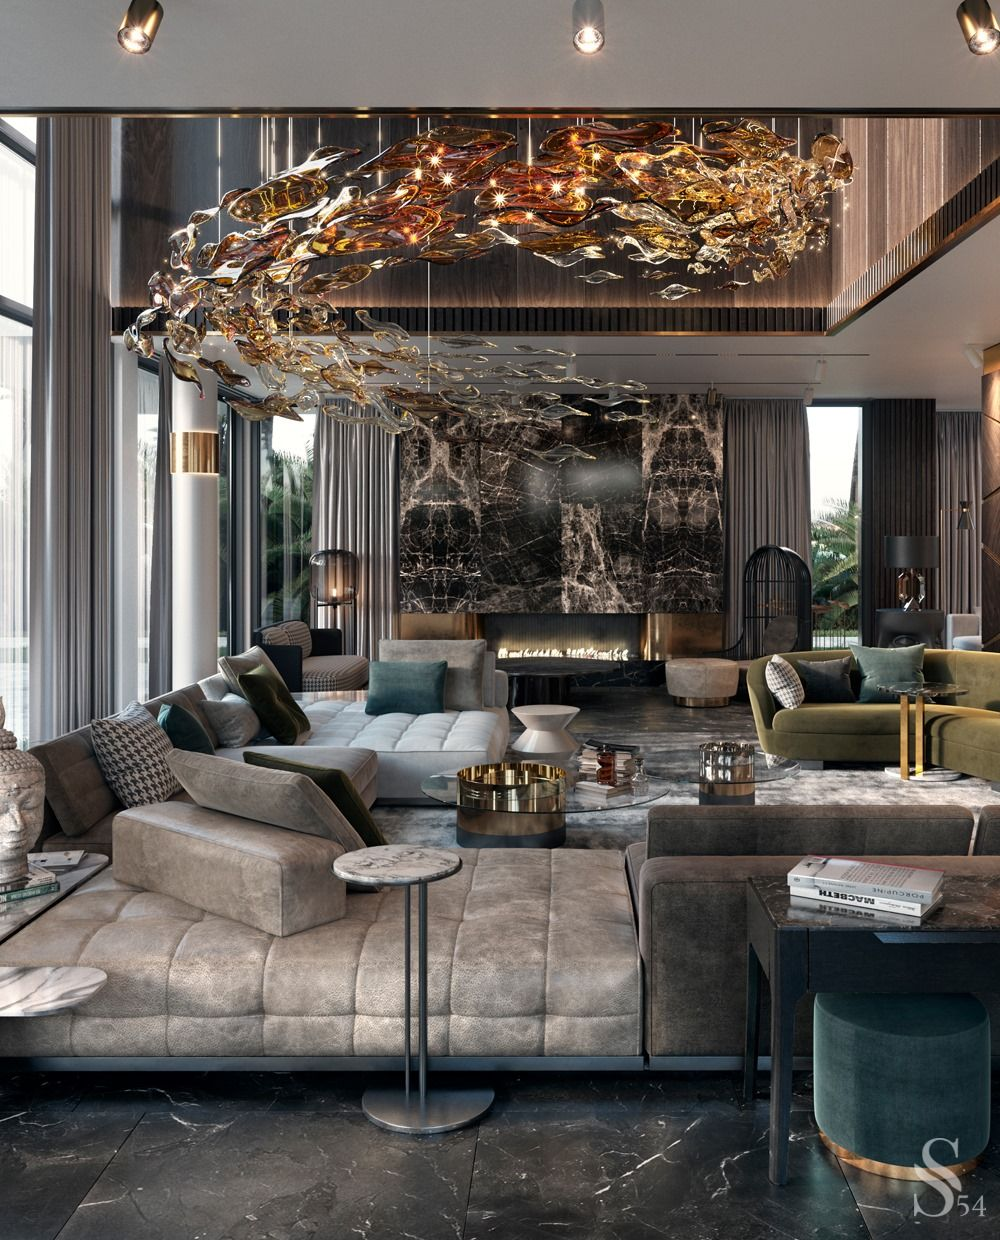 Pin By Jessika Sterling On Modern Penthouse Villa In 2020 Luxury Living Room Design Luxury House Interior Design House Design